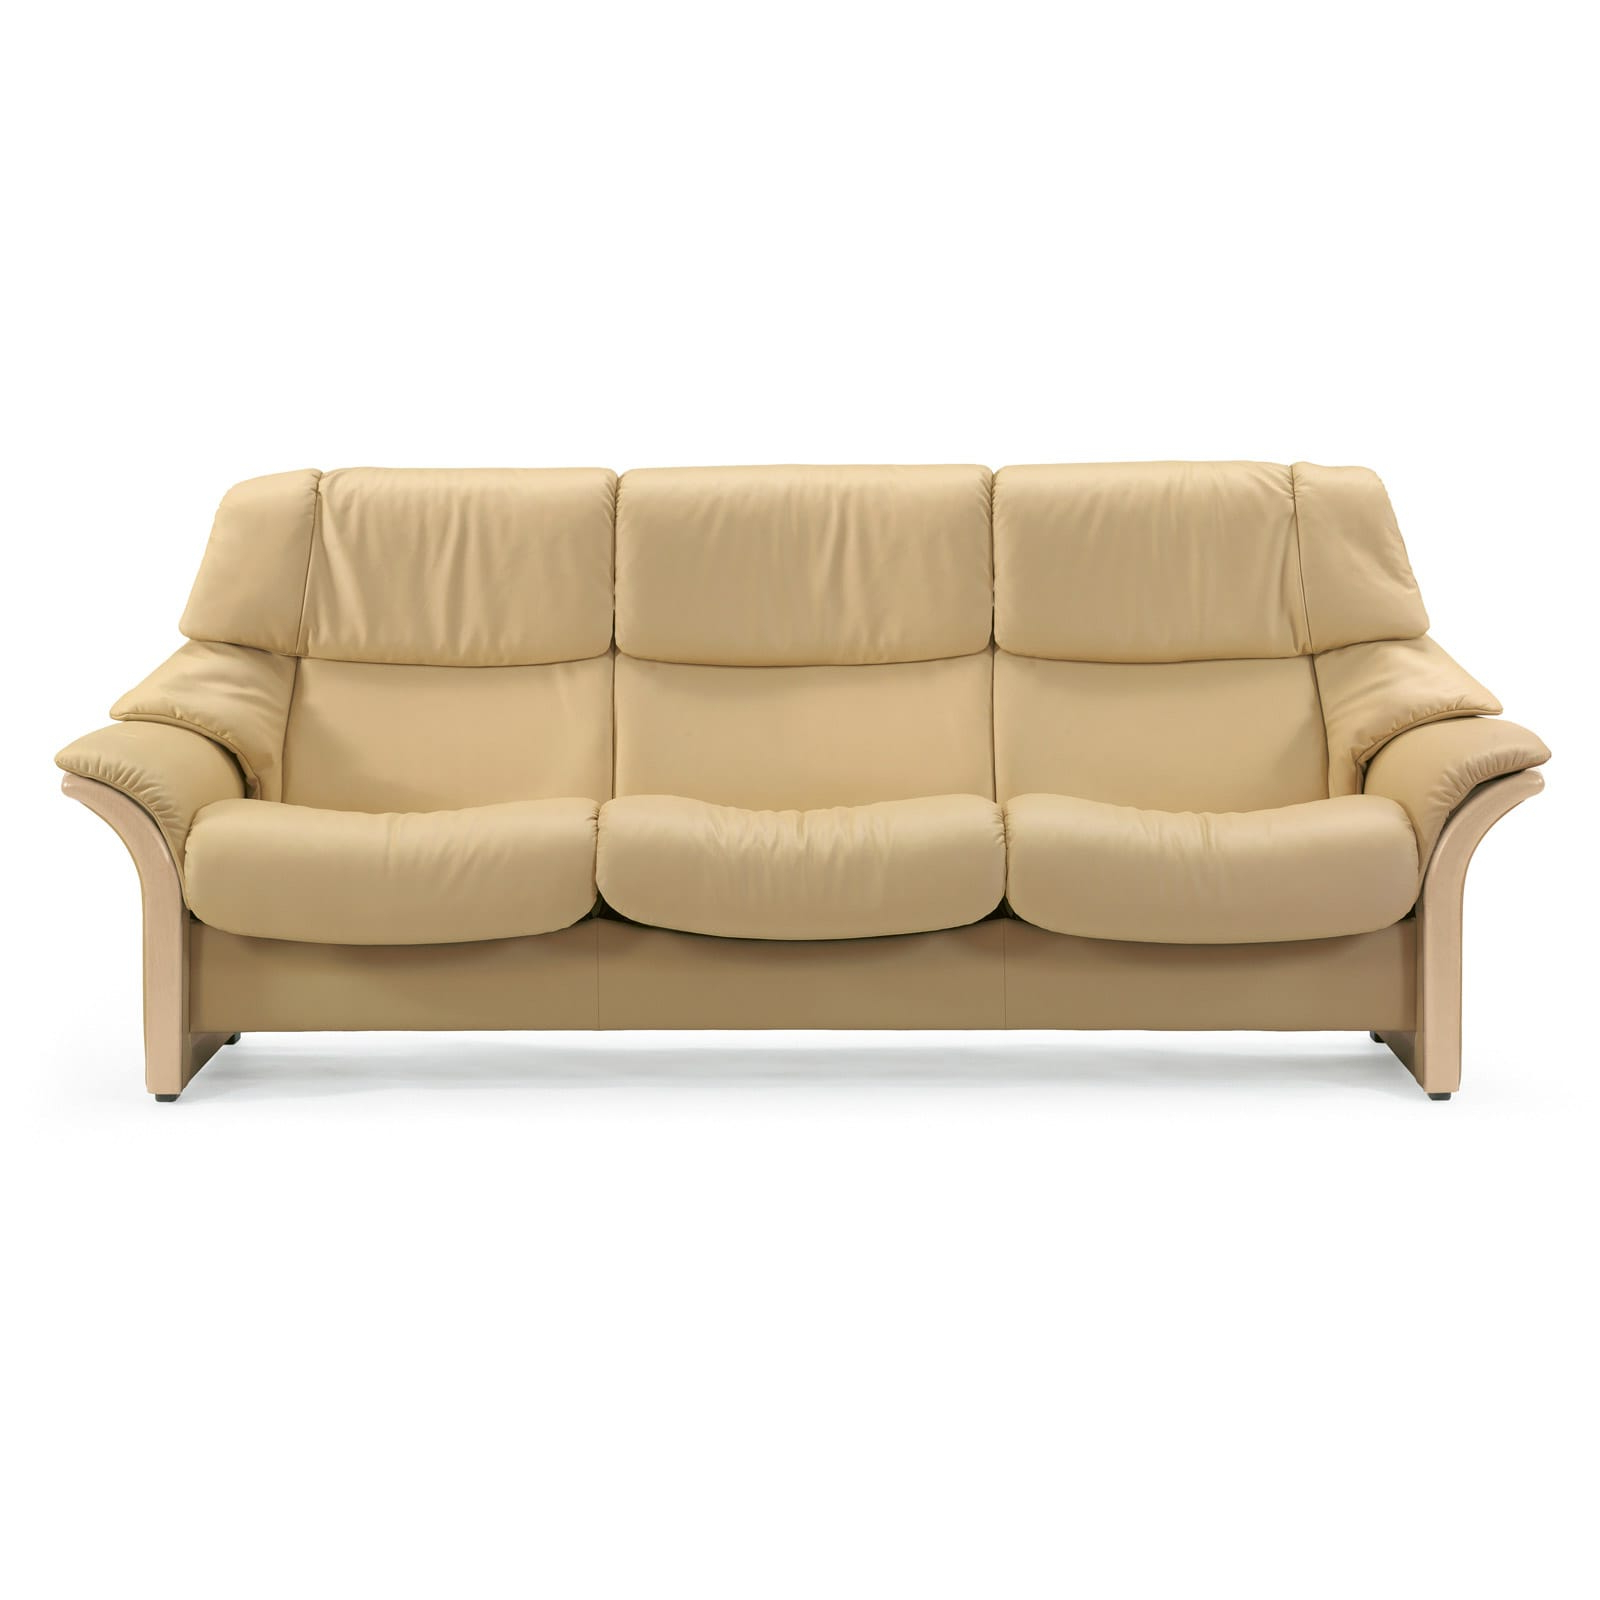 2019 Stressless 3 Sitzer Eldorado (M) Hoch Leder Paloma Sand Holz Natur Throughout Paloma Sofas With Cushions (View 14 of 25)